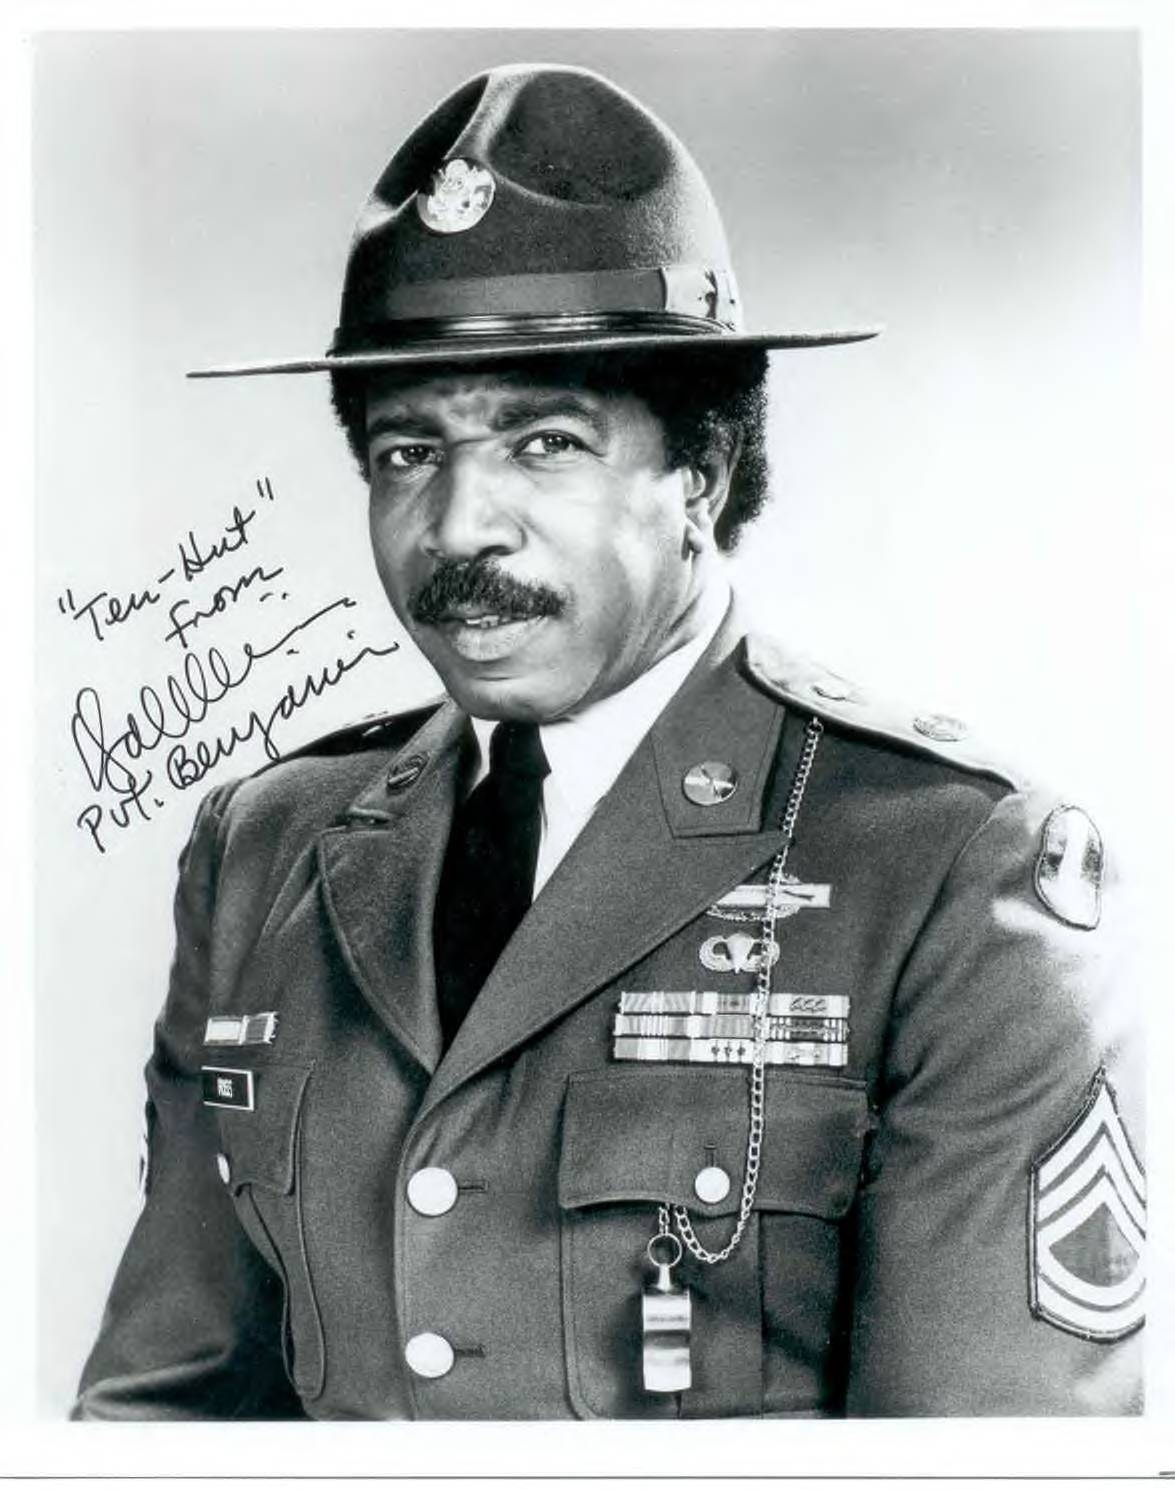 hal williams movies and tv shows